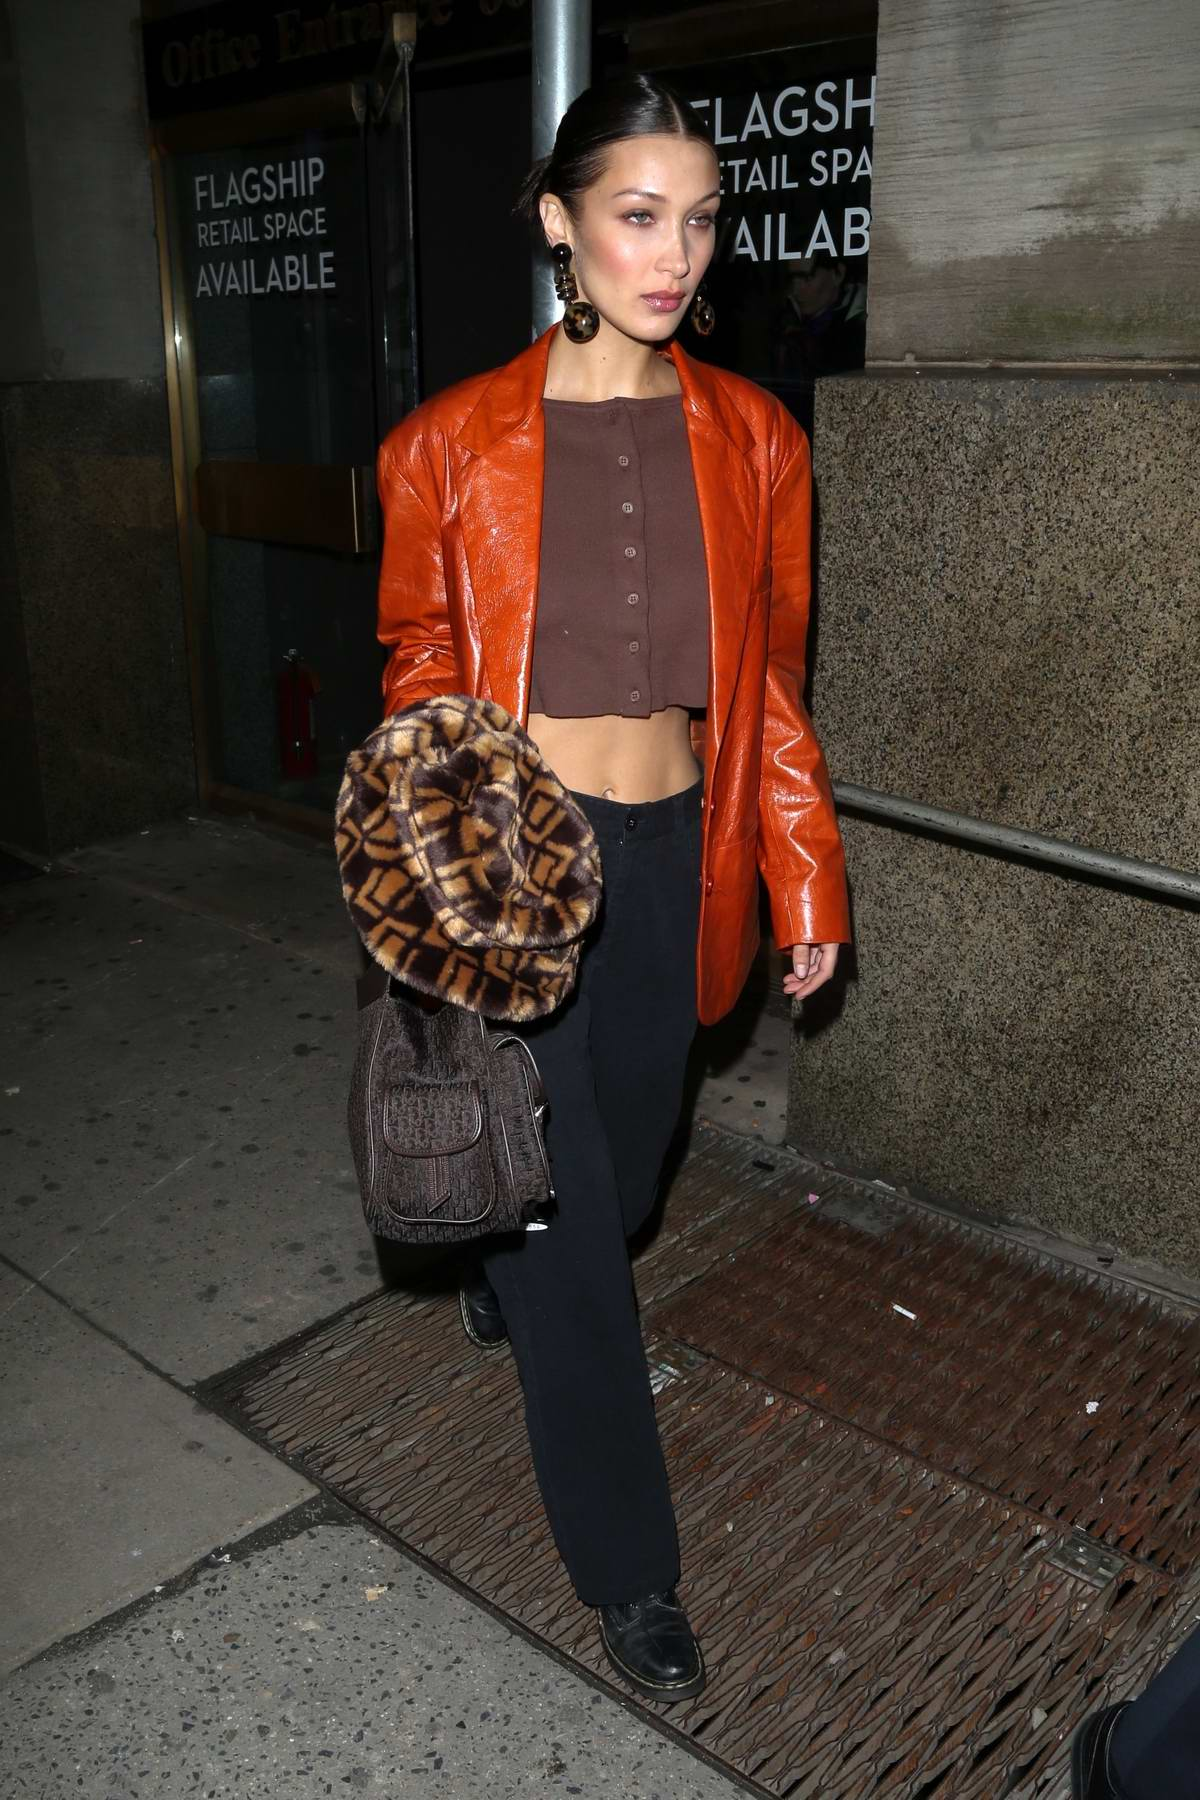 Bella Hadid looks stunning as she leaves Michael Kors show during NYFW 2020 in New York City